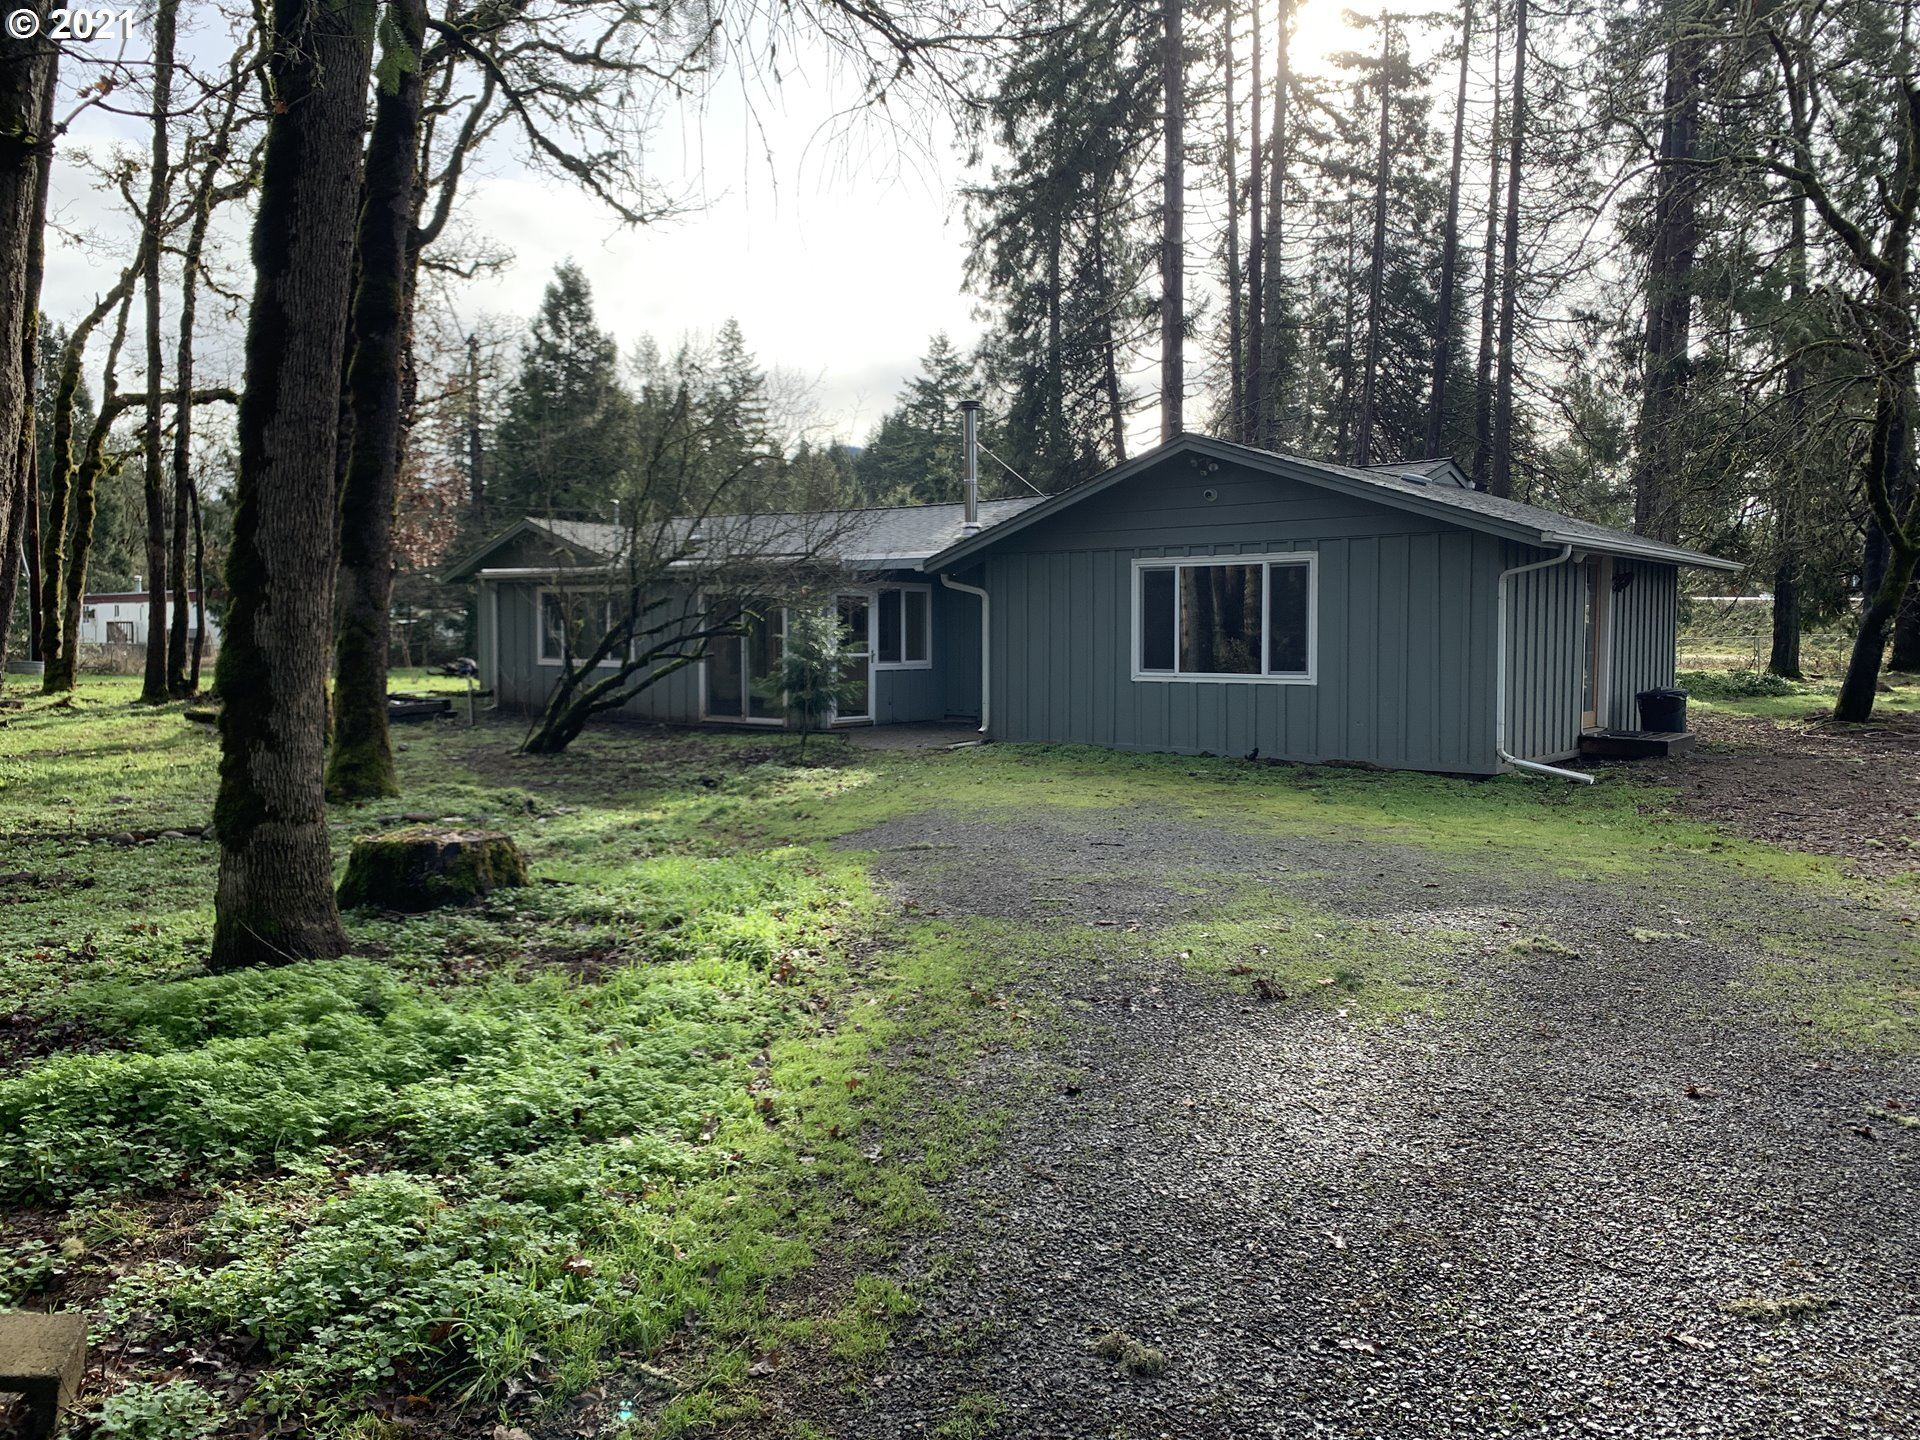 Photo for 38881 HWY 58, Dexter, OR 97431 (MLS # 21292565)